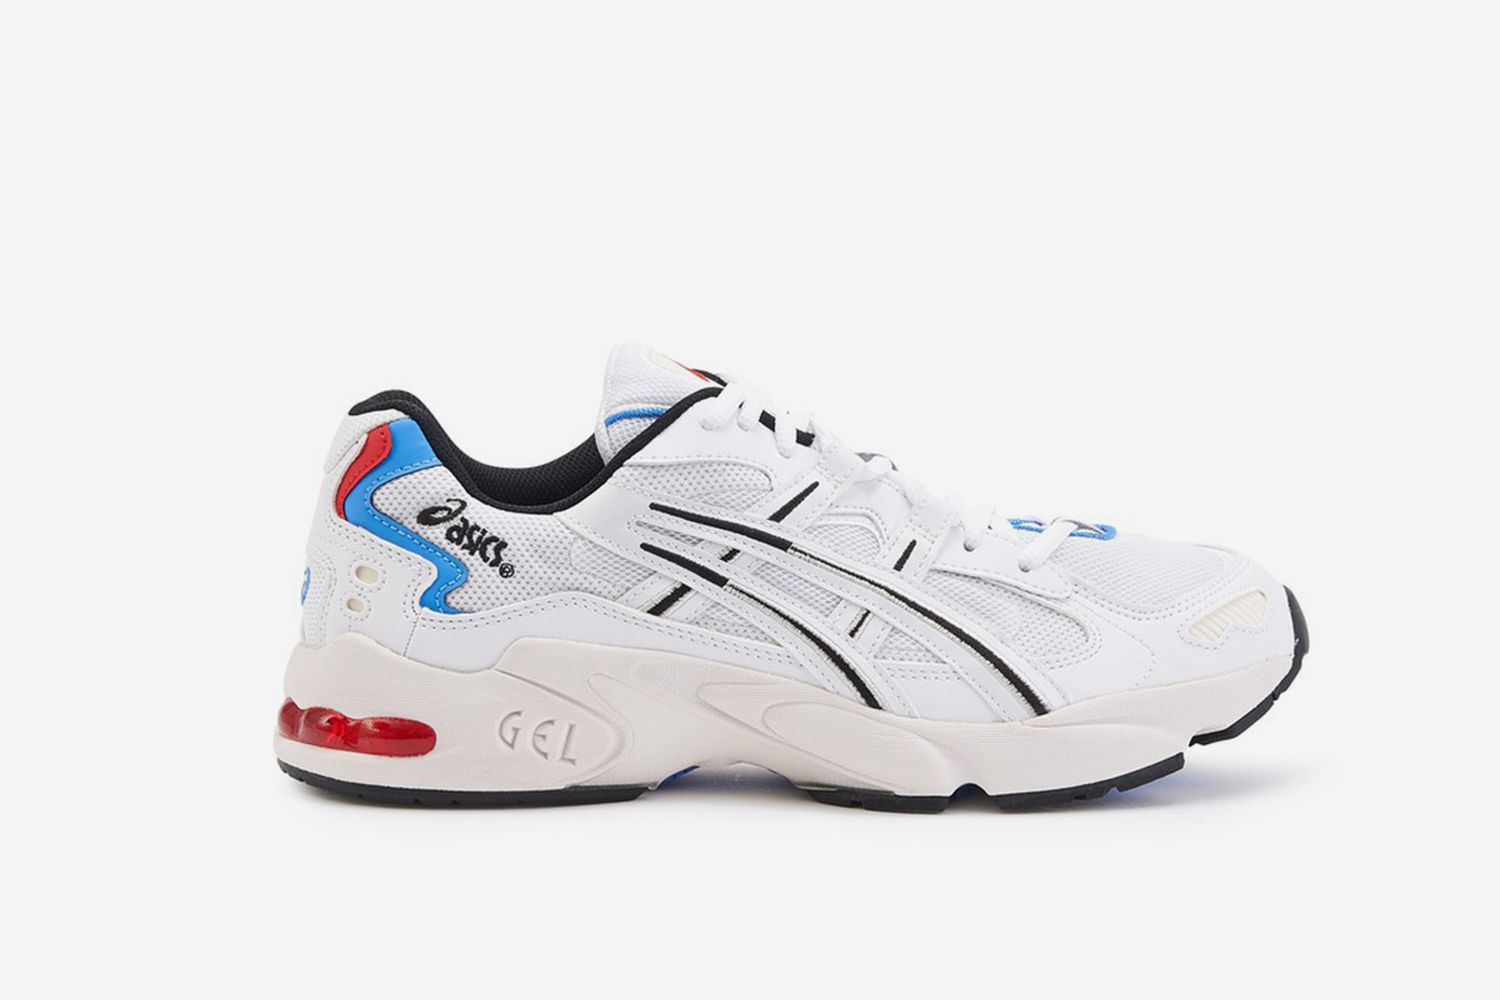 Gel-Kayano 5 OG Trainers